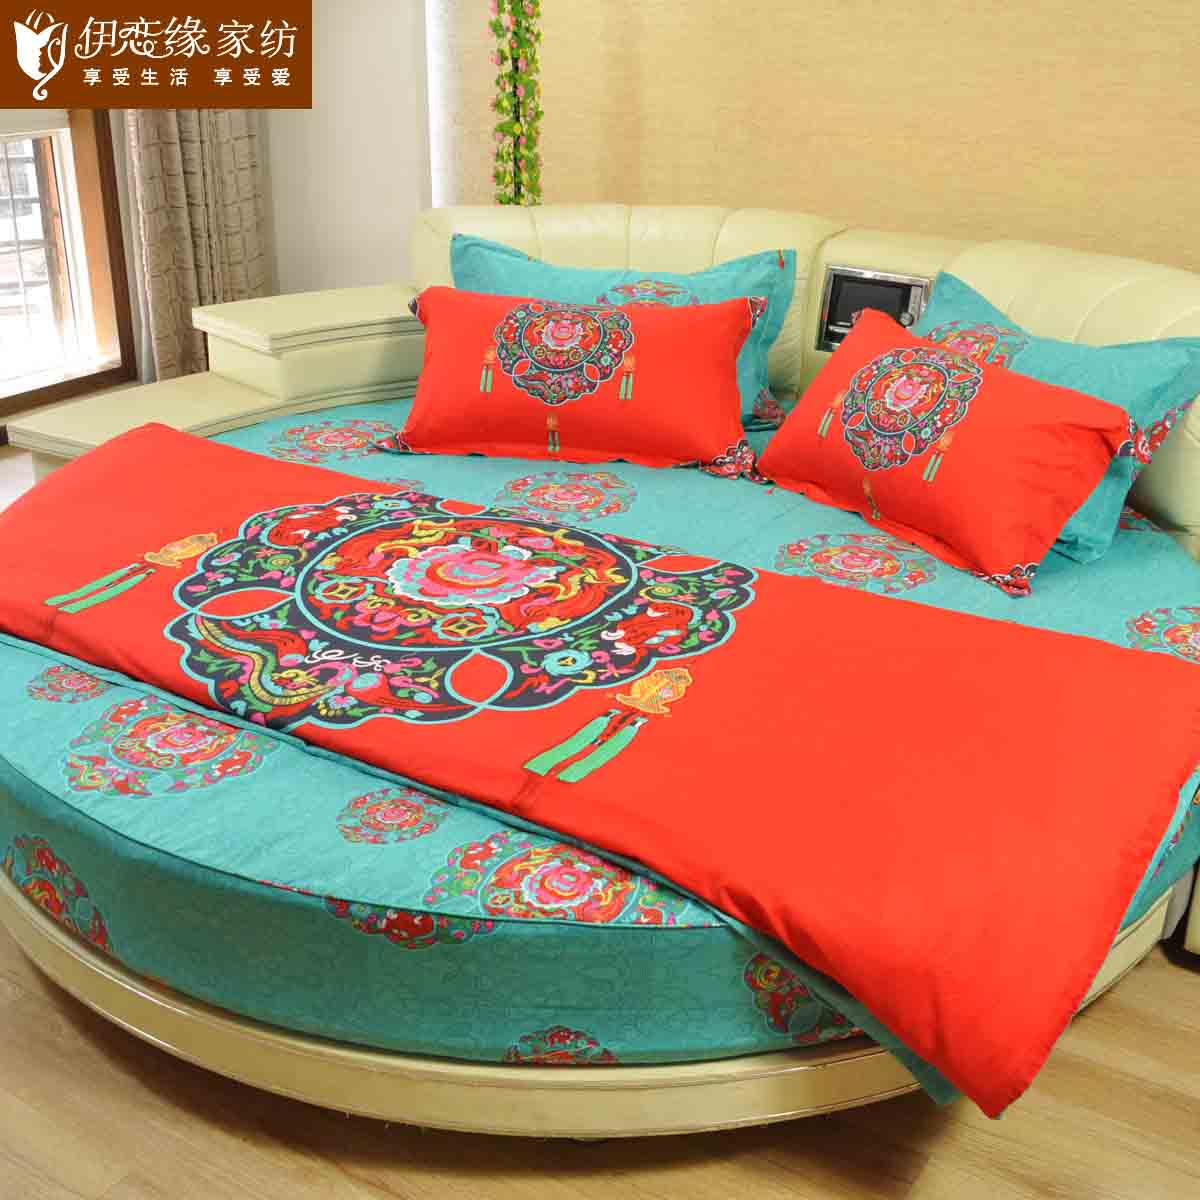 Love iraqi edge round bed bedding package wedding ethnic style chinese knot round bed li family of four menghuitangzhao